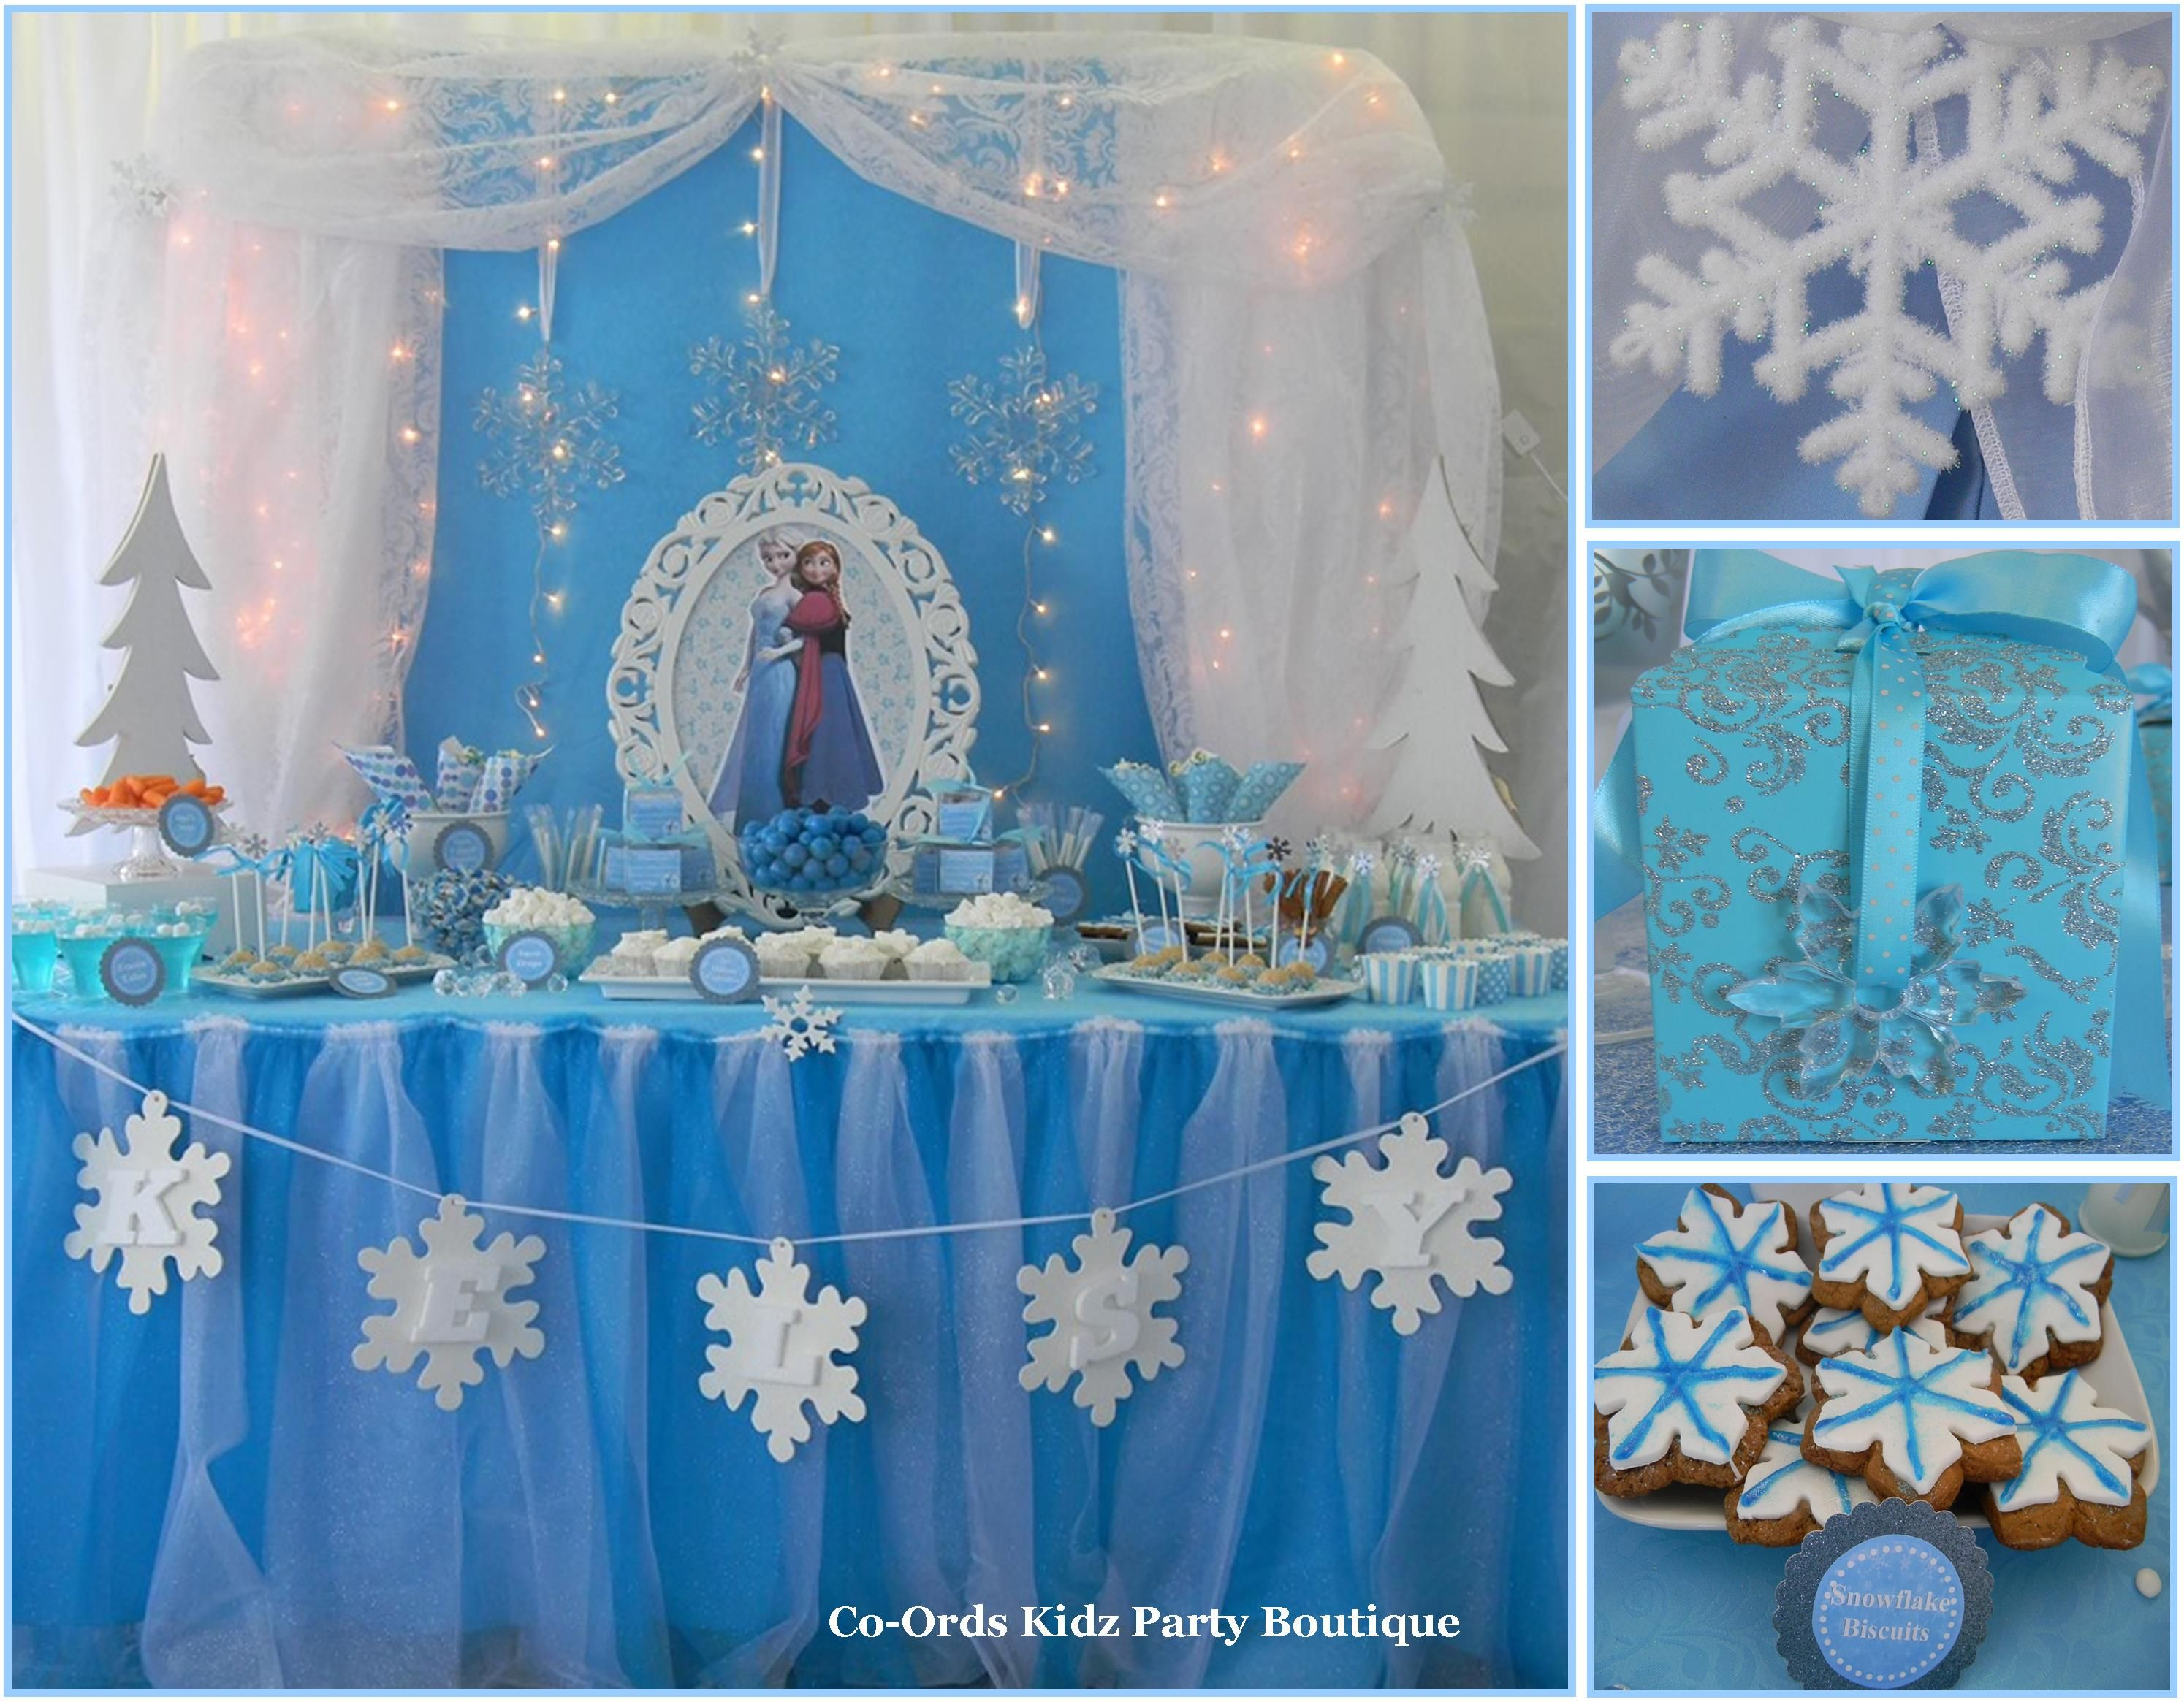 Fiesta de cumplea os frozen 100 ideas originales fiesta for Decoracion pared salon original